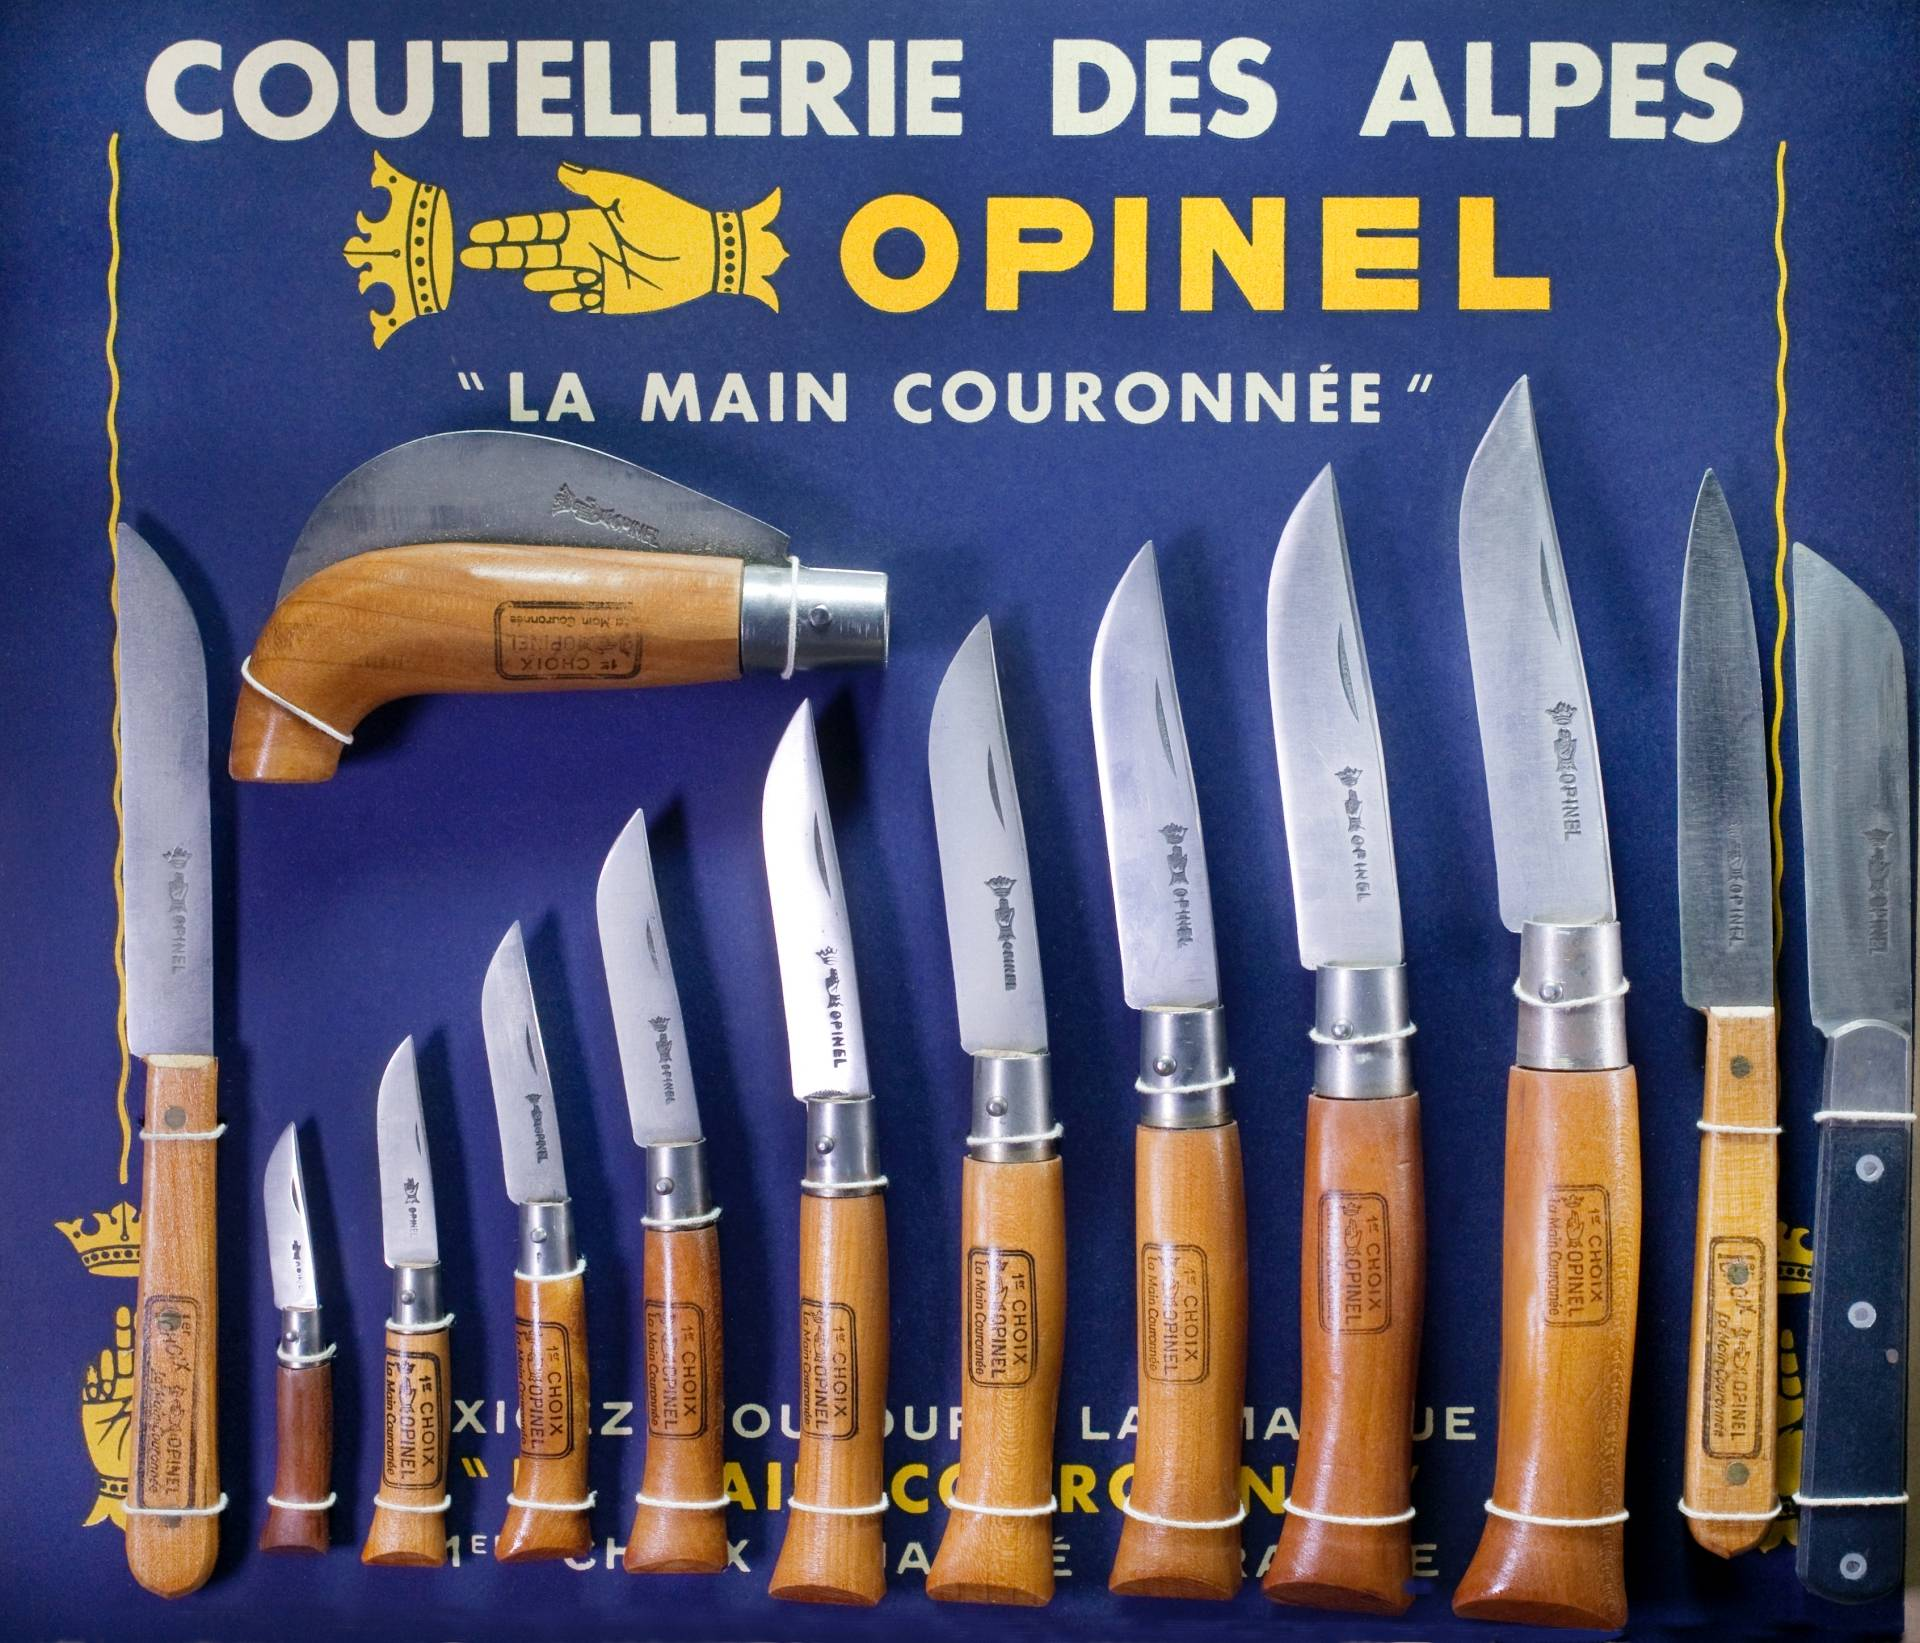 Dating opinel knives